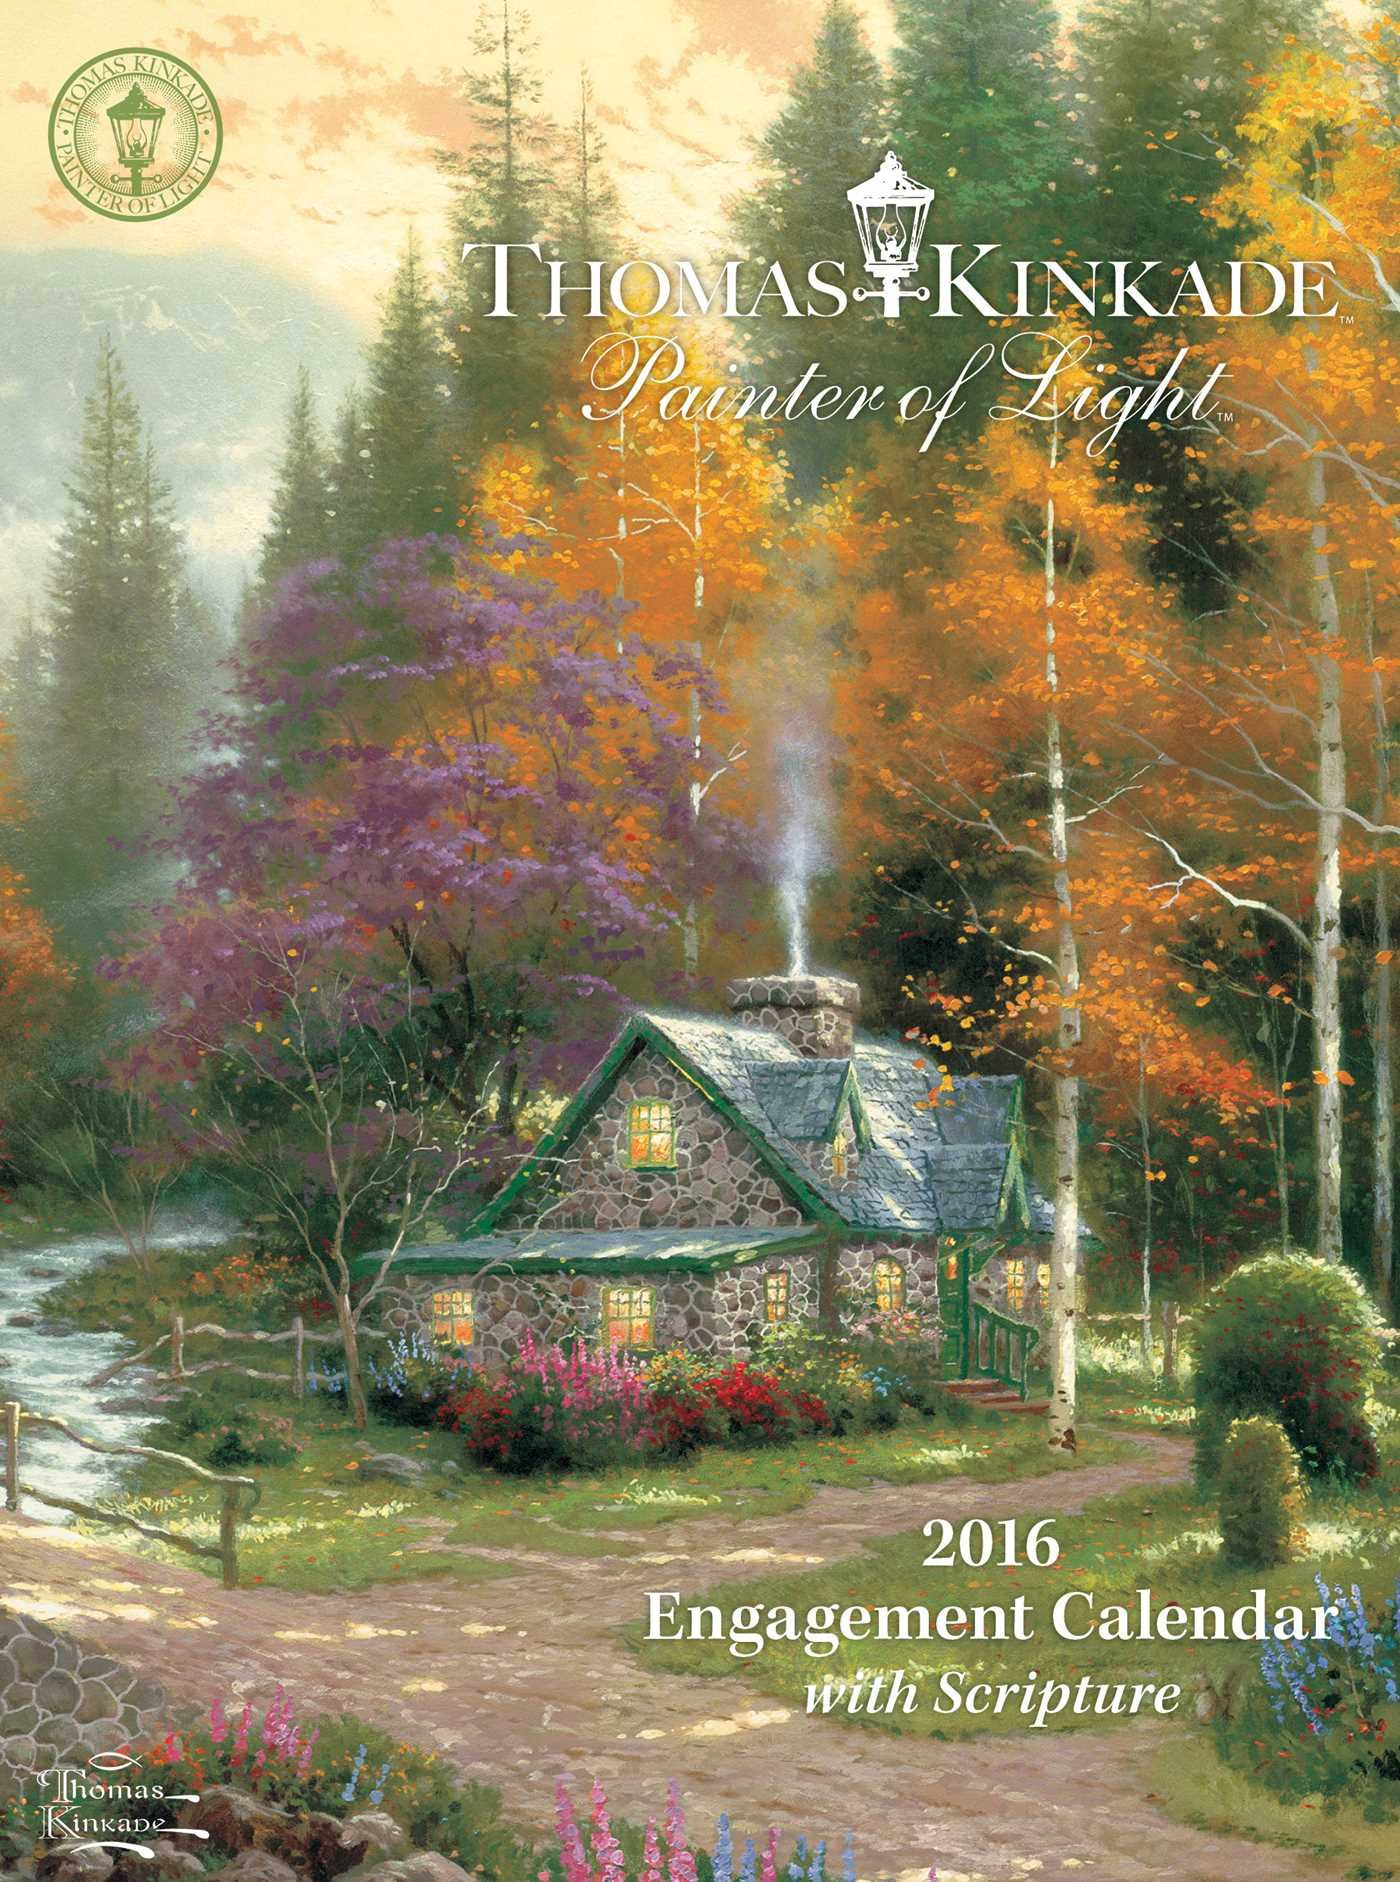 Thomas Kinkade Painter Of Light With Scripture 2016 Engagement Calendar:  Thomas Kinkade: 9781449466381: Amazon.com: Books